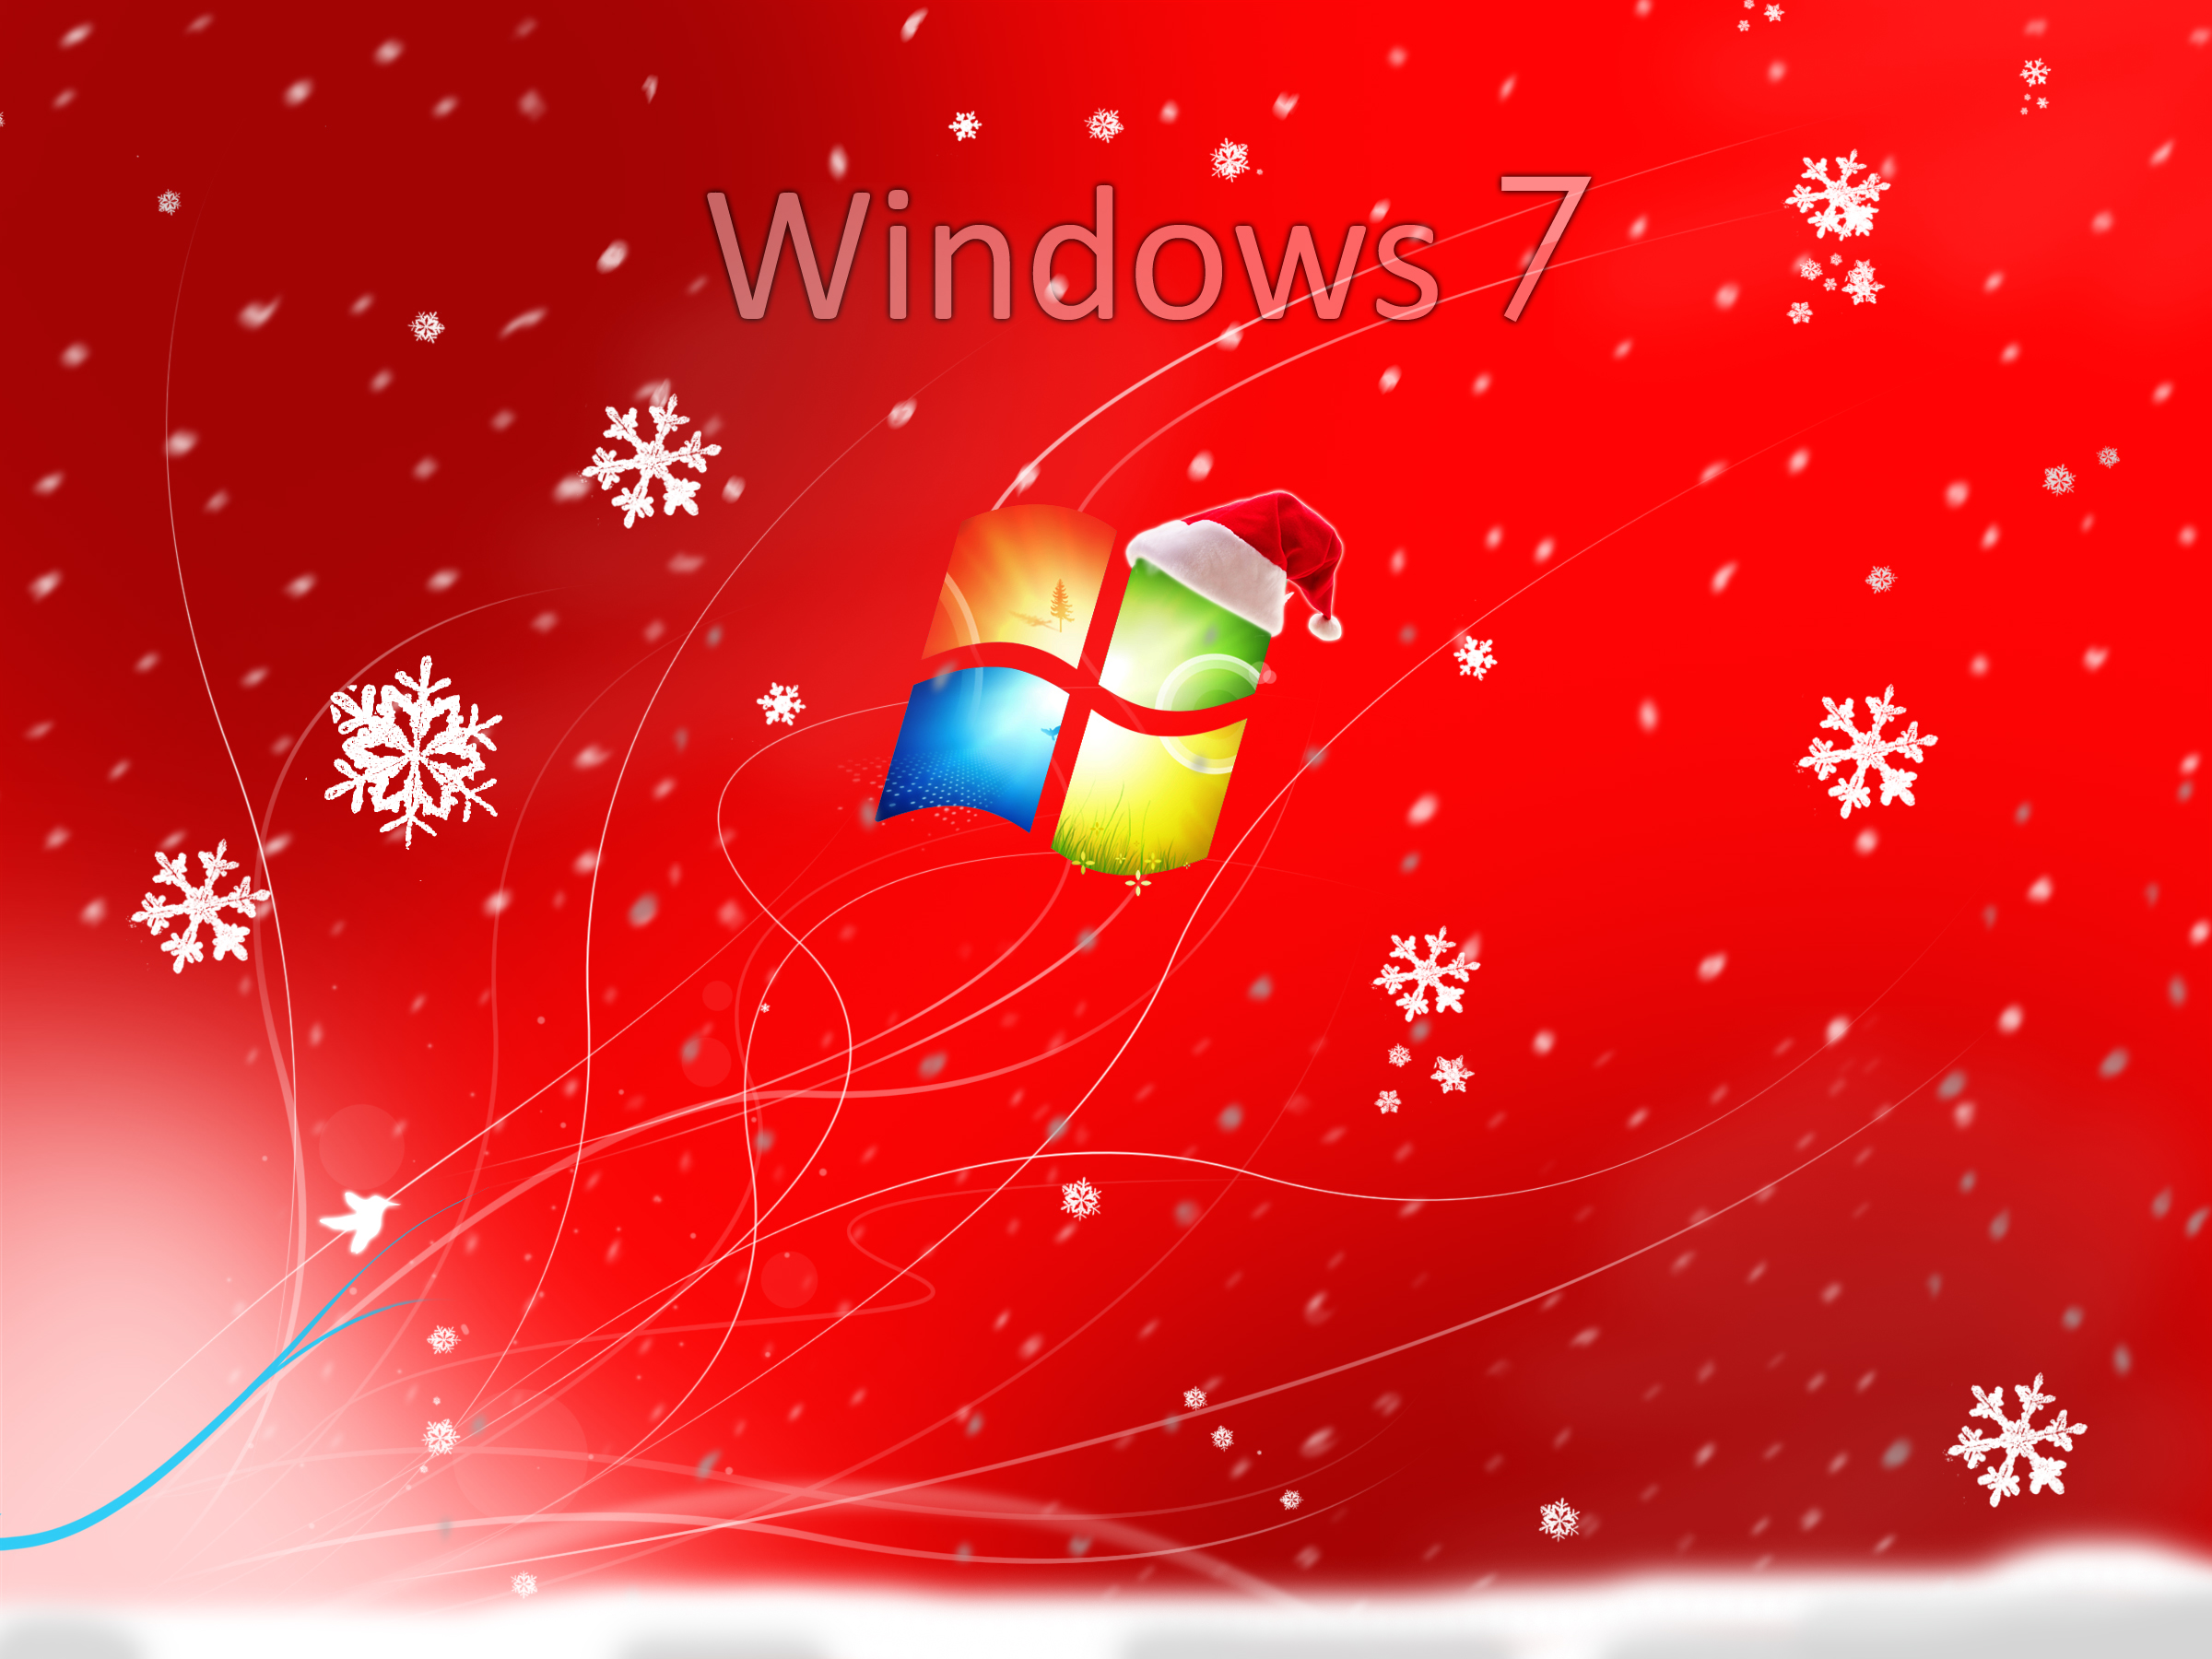 Windows Christmas Wallpaper 2400x1800